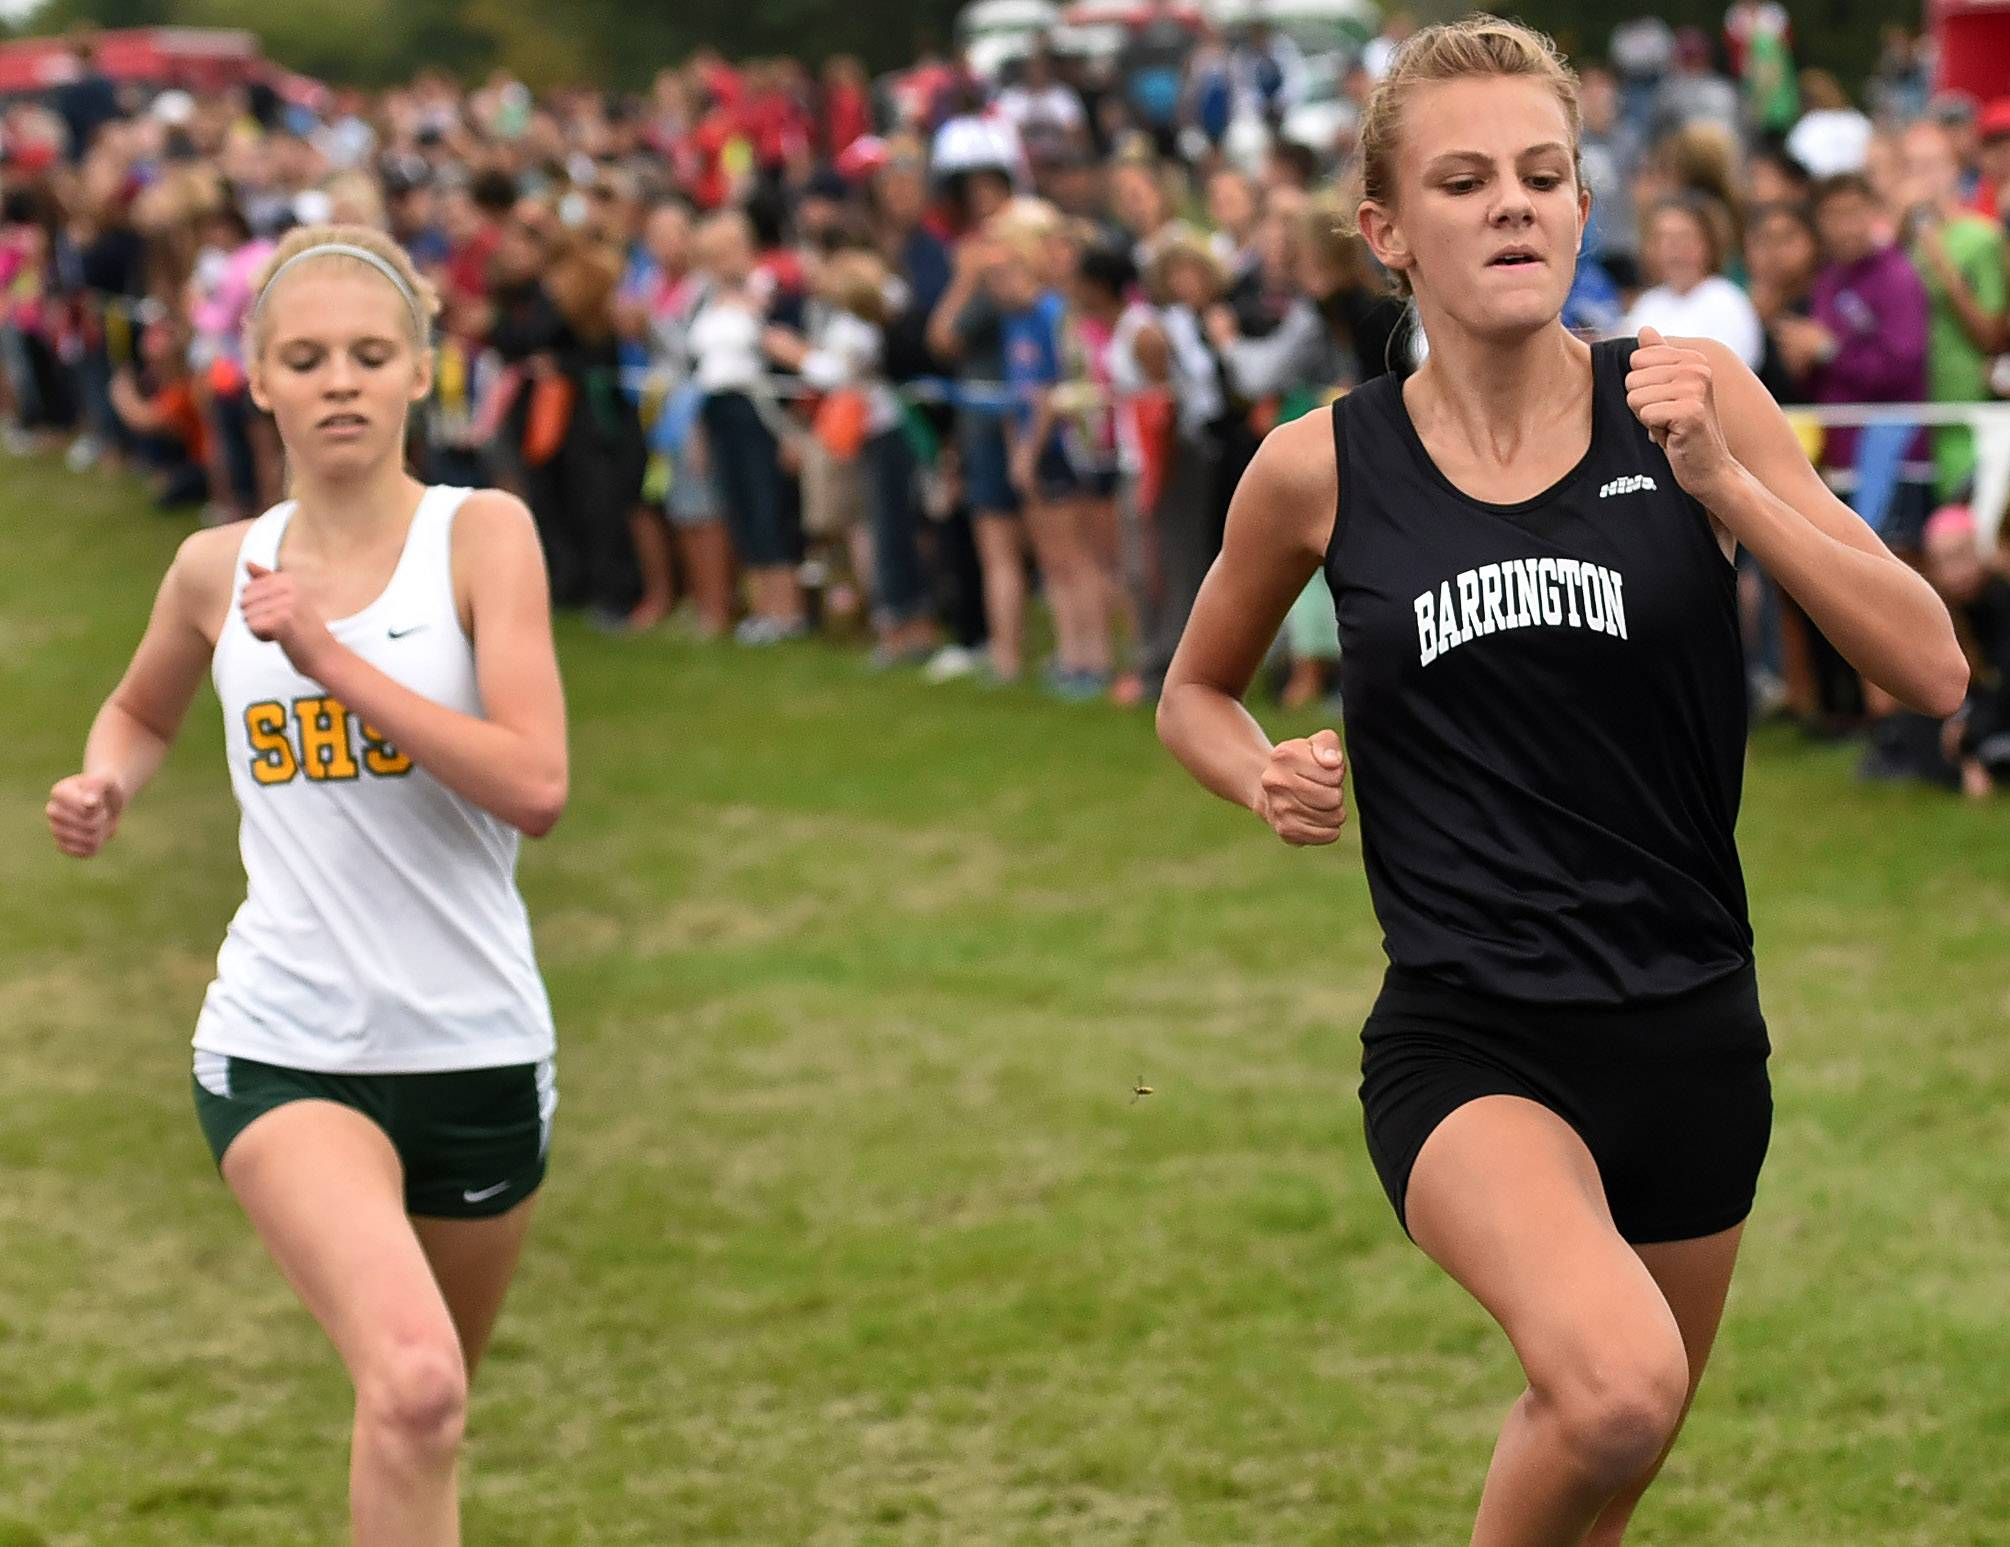 Jocelyn Long of Barrington, right, finishes third, edging out Isabelle Sparreo of Stevenson at the Palatine at Deer Grove East Forest Preserve on Saturday.